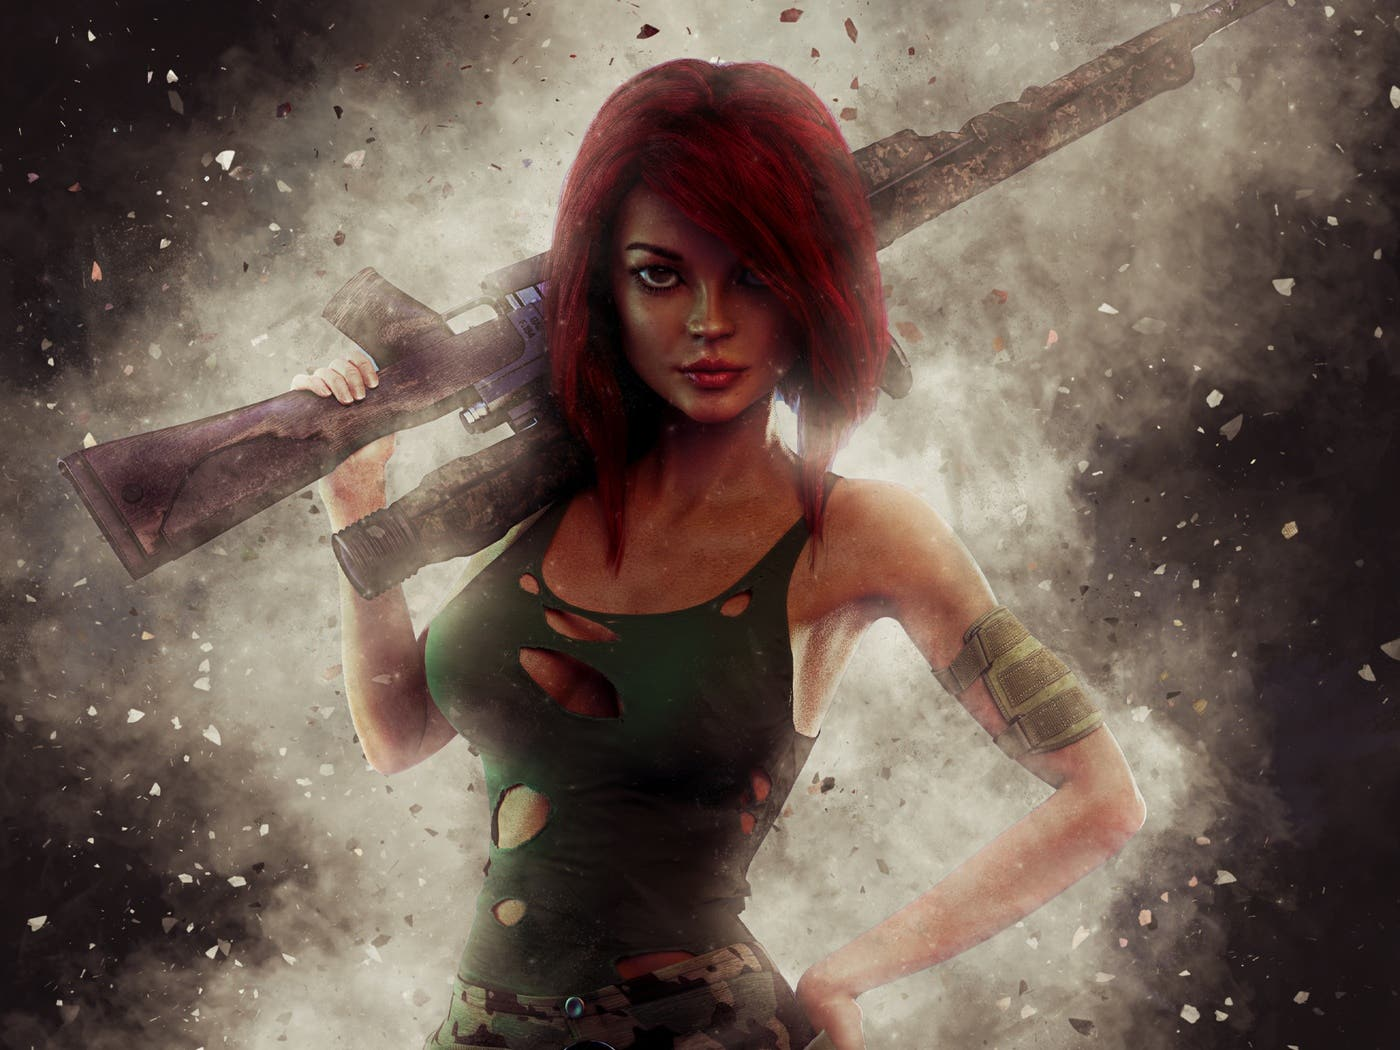 4x3-1517464-soldier-girl-1.png